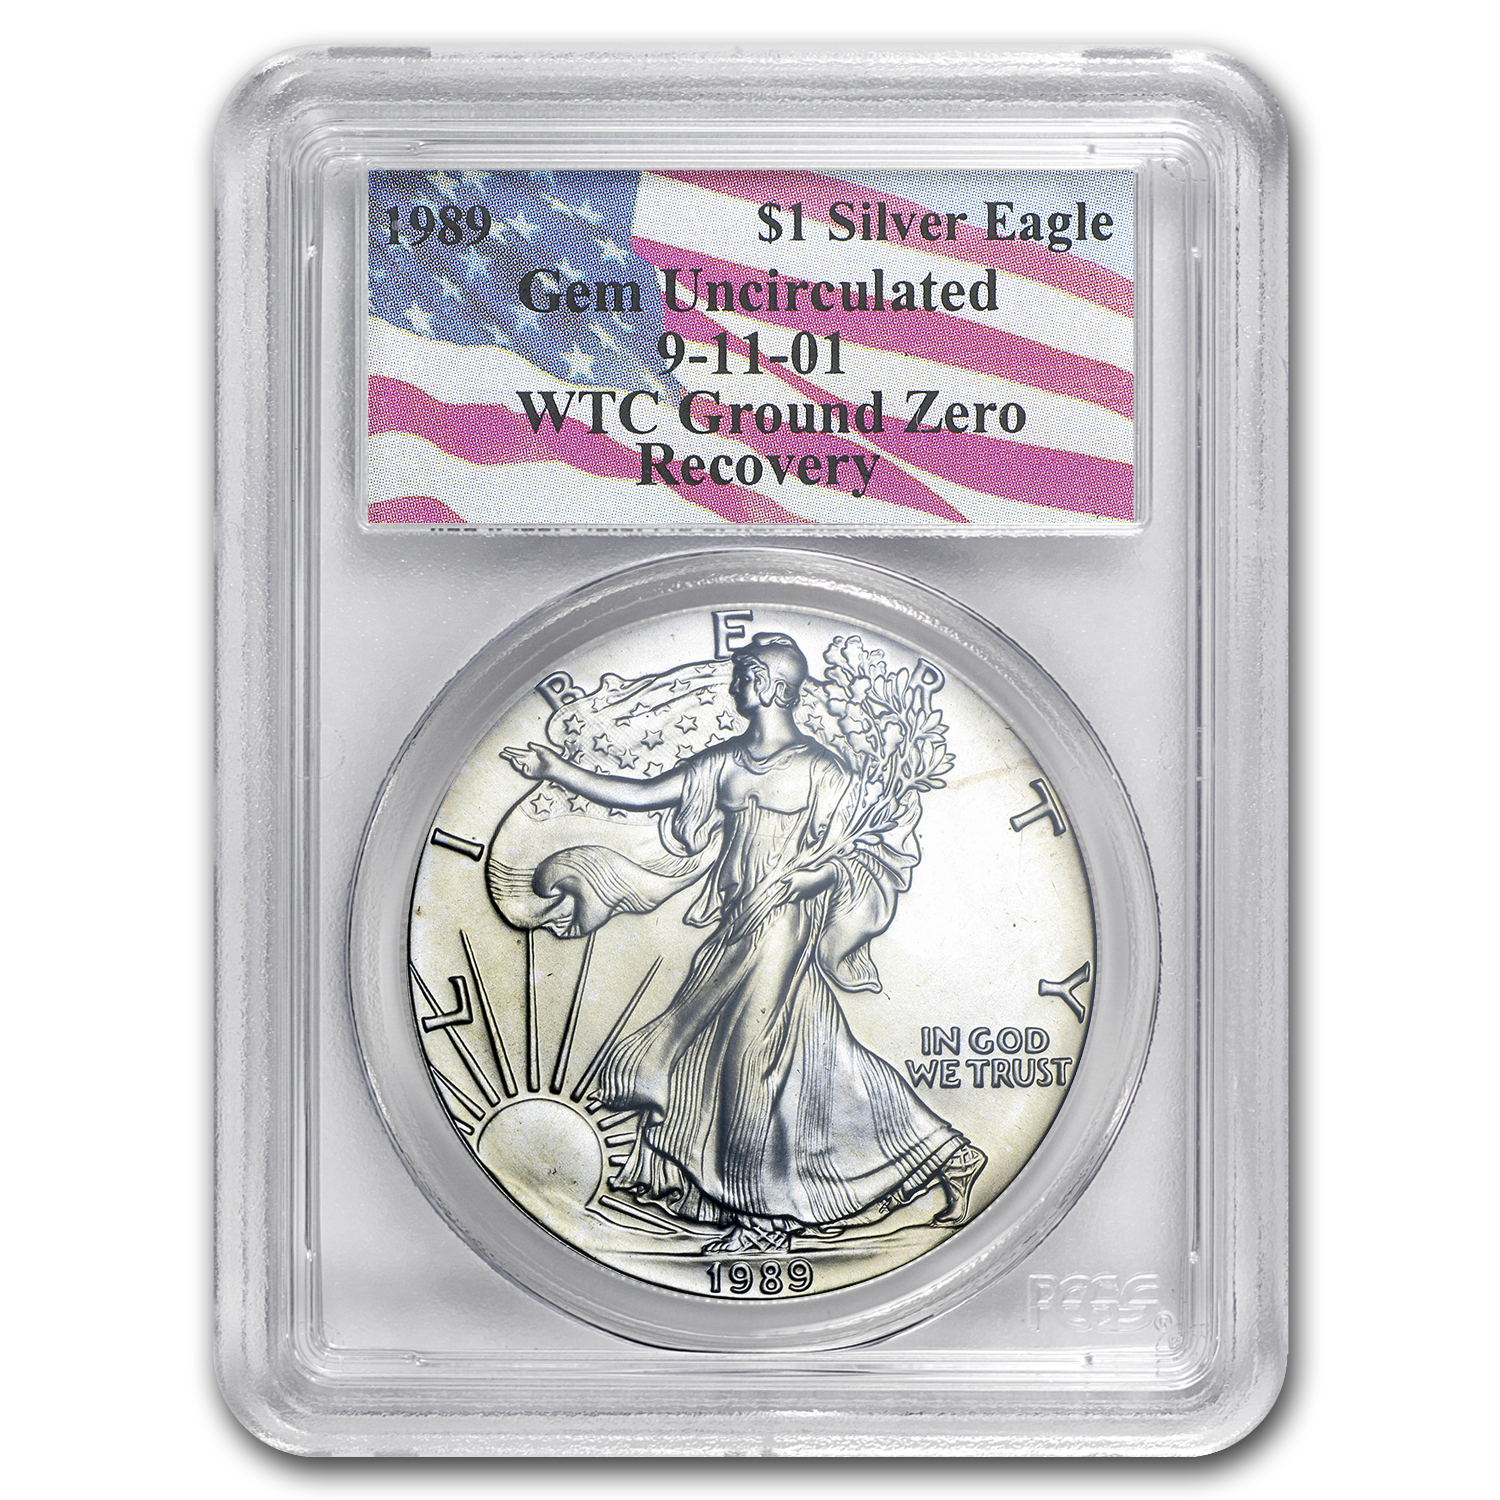 1989 Silver American Eagle Gem Unc PCGS (World Trade Center)